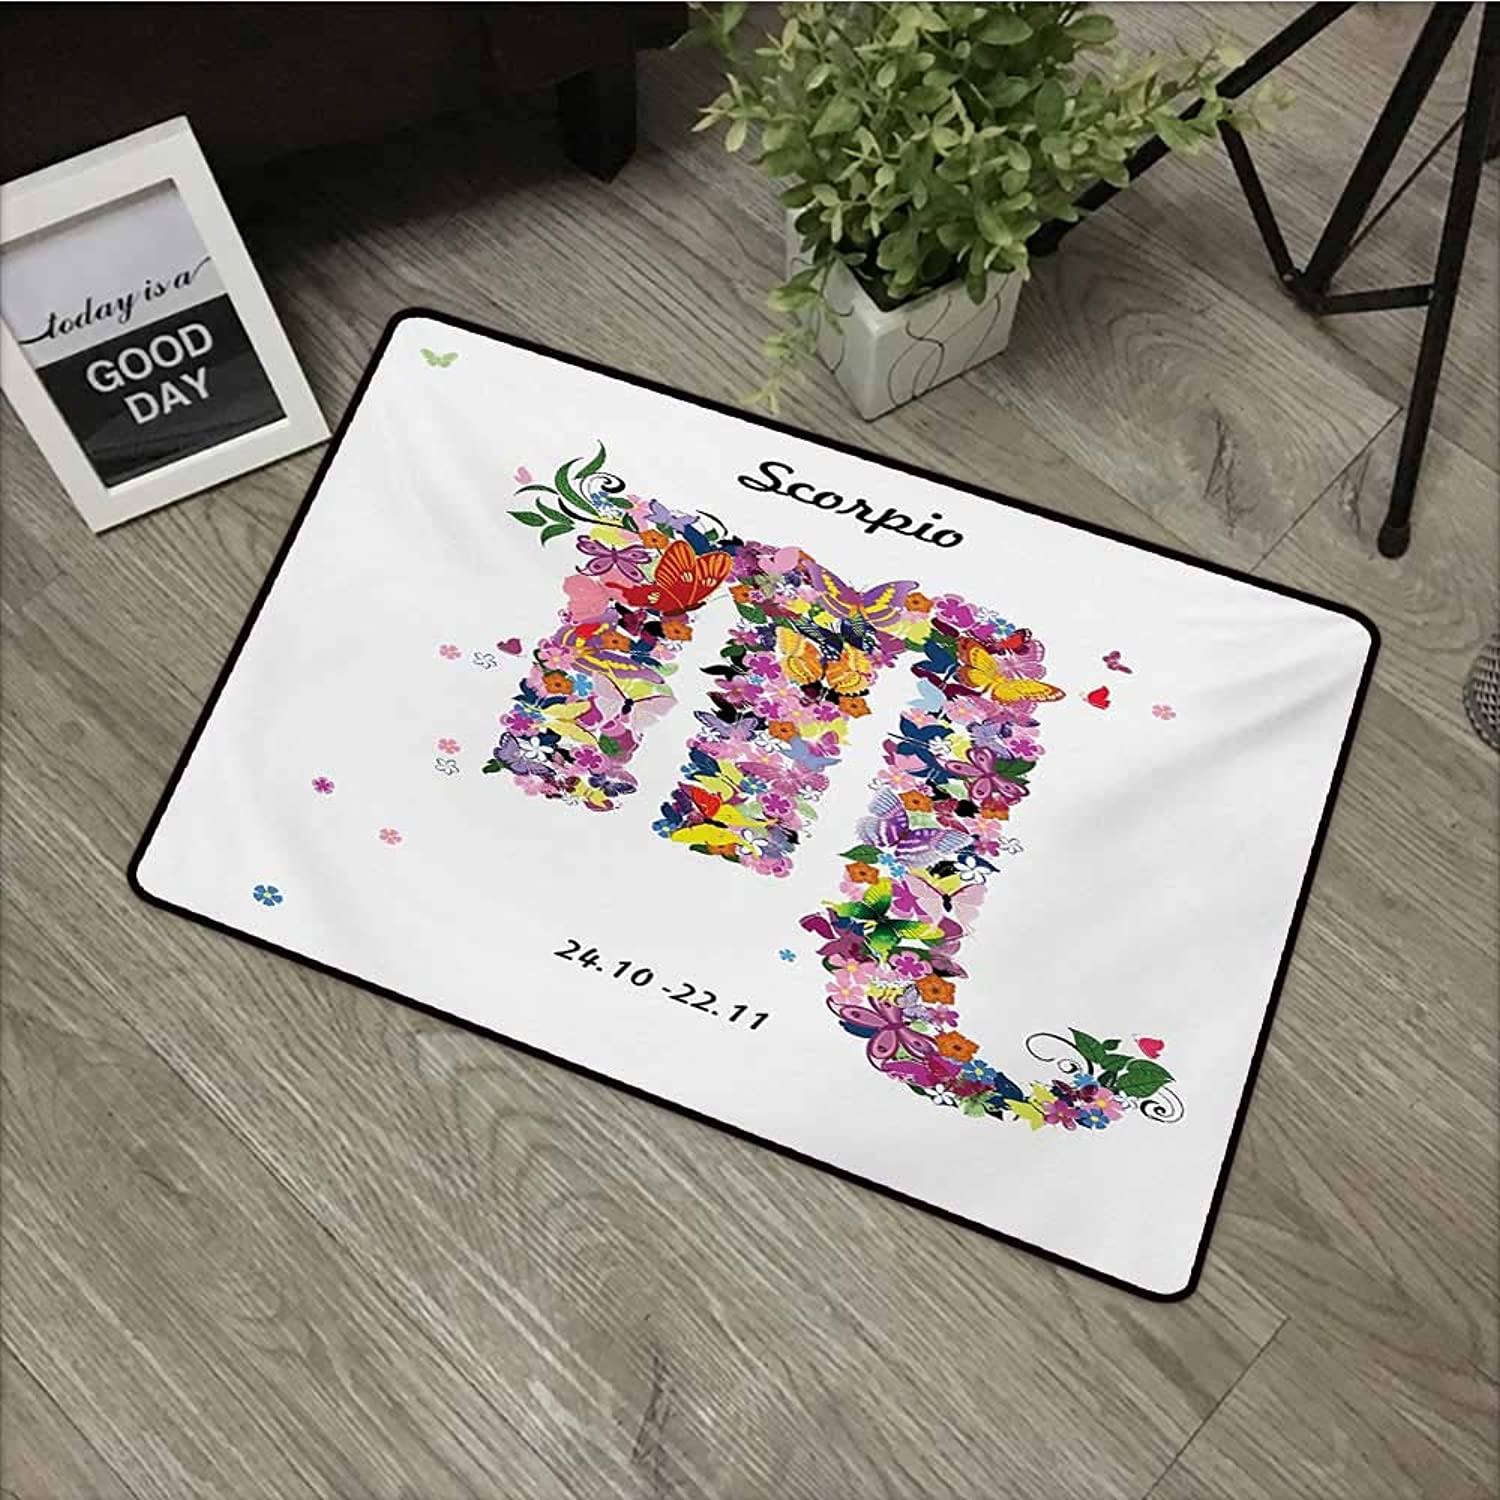 Bathroom door mat W35 x L59 INCH Zodiac Scorpio,Floral Spring Inspired Hgoldscope Sign Design with Butterflies colorful Wings,Multicolor Easy to clean, no deformation, no fading Non-slip Door Mat Carpe